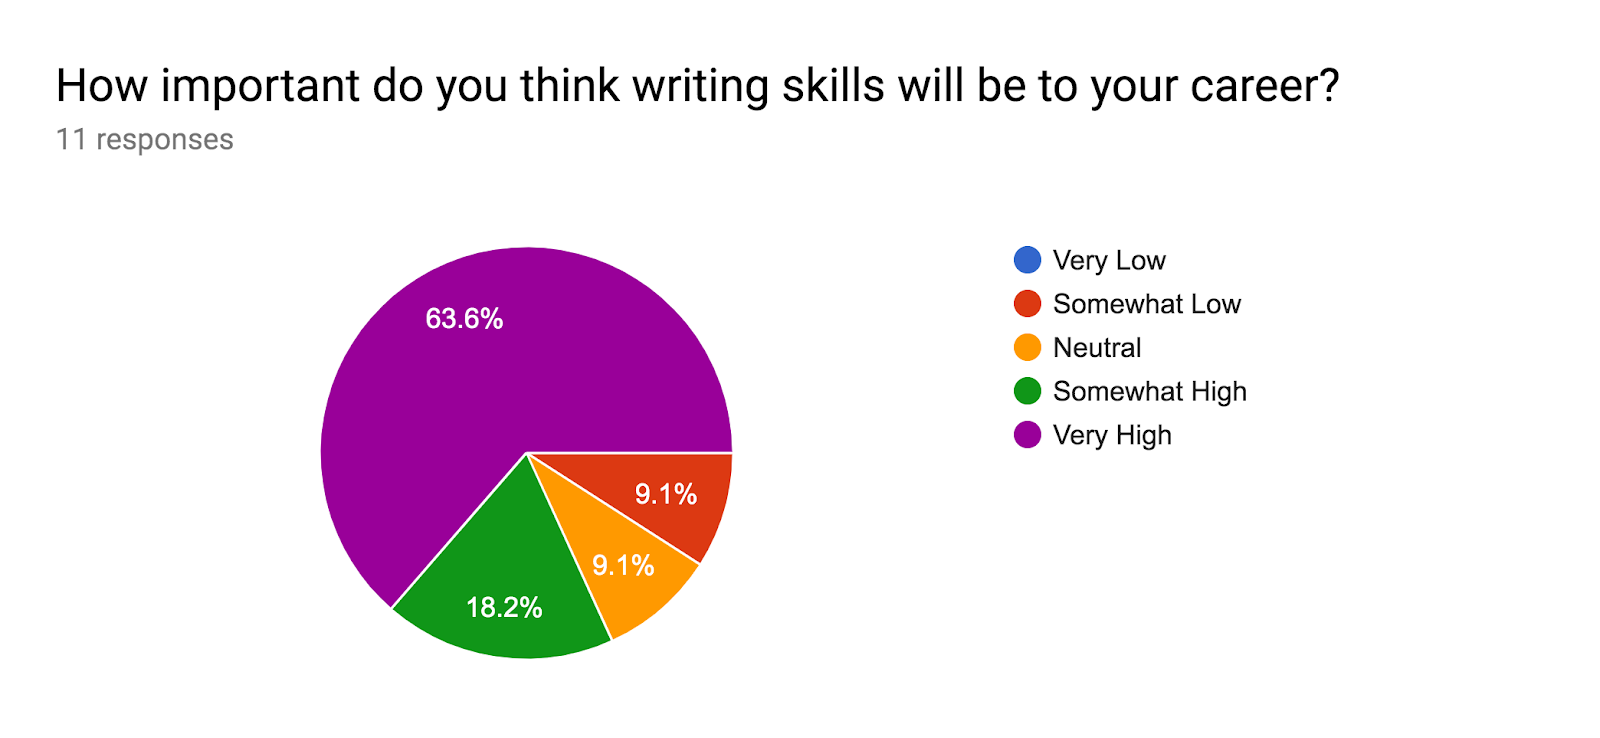 Forms response chart. Question title: How important do you think writing skills will be to your career?. Number of responses: 11 responses.